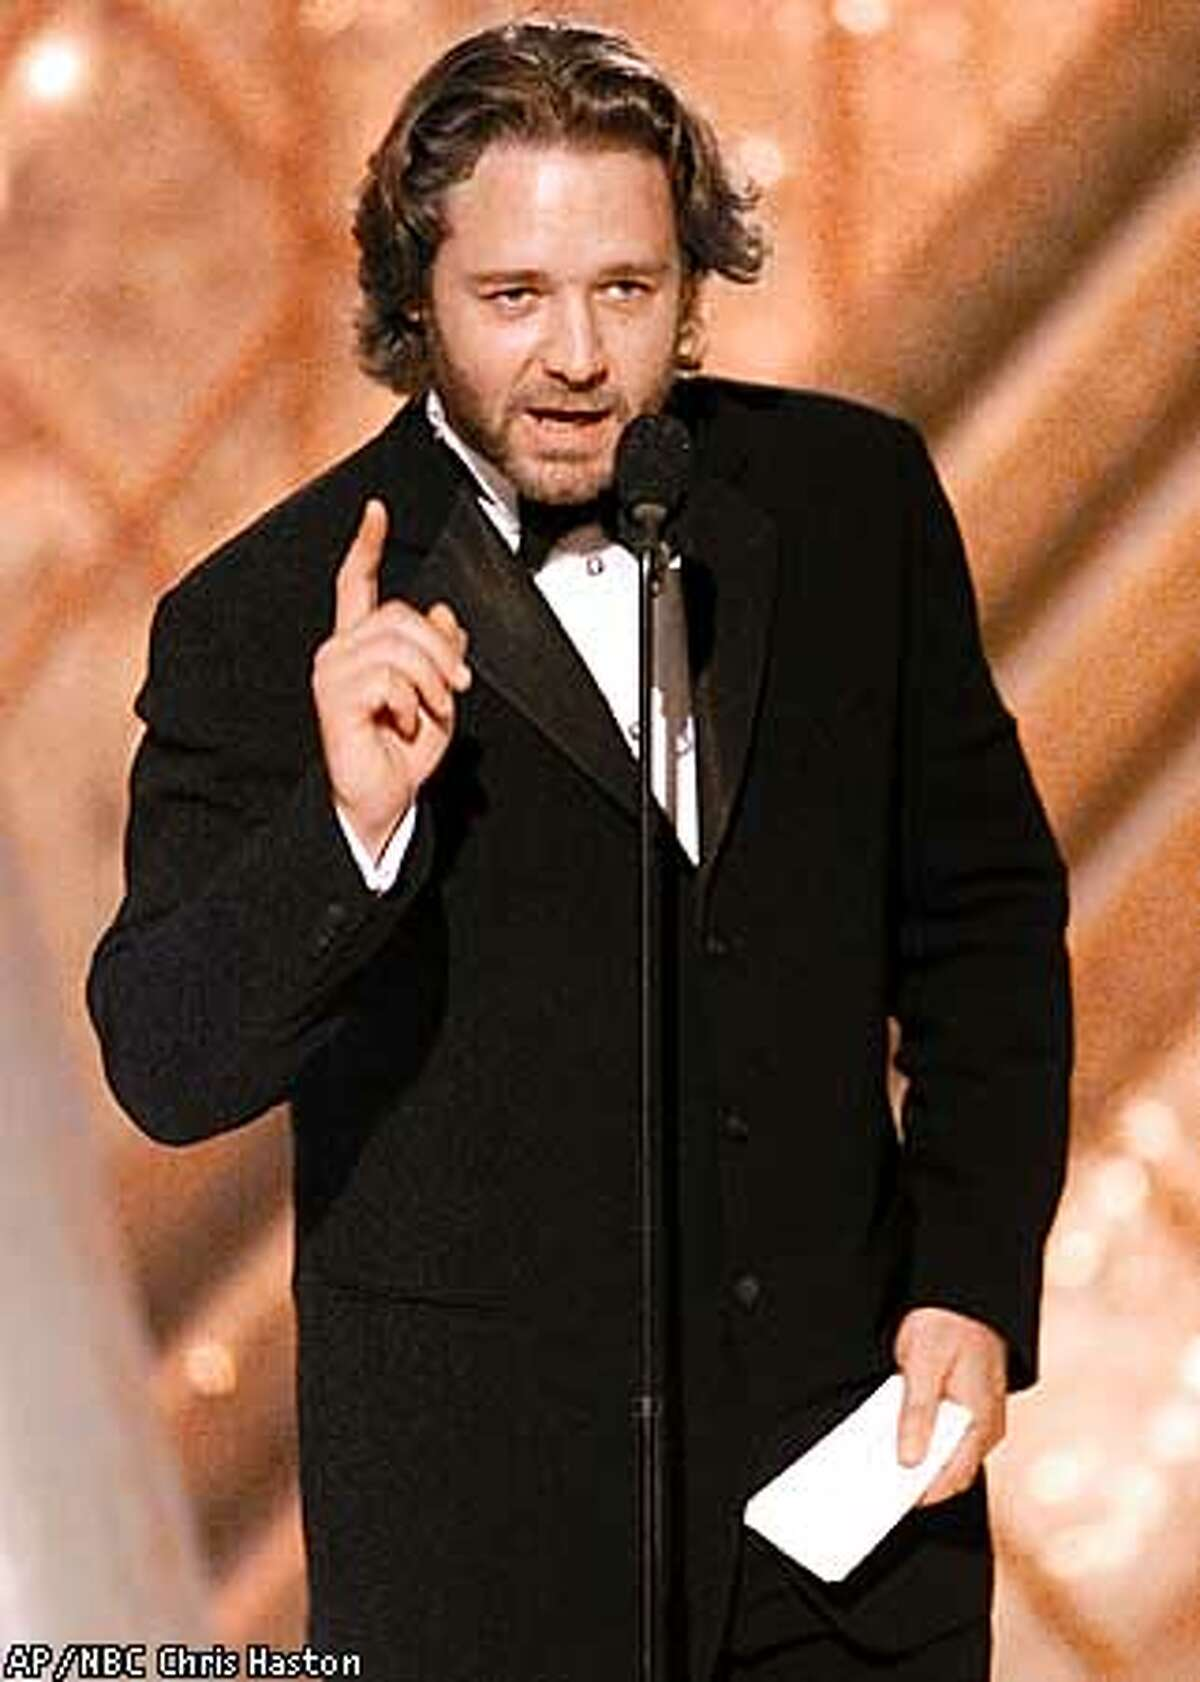 """Actor Russell Crowe accepts his award for best actor in a dramatic motion picture for his work in """"A Beautiful Mind"""" at the 59th Annual Golden Globe Awards in Beverly Hills, Calif., Sunday, Jan. 20, 2002. (AP Photo/NBC, Chris Haston)"""